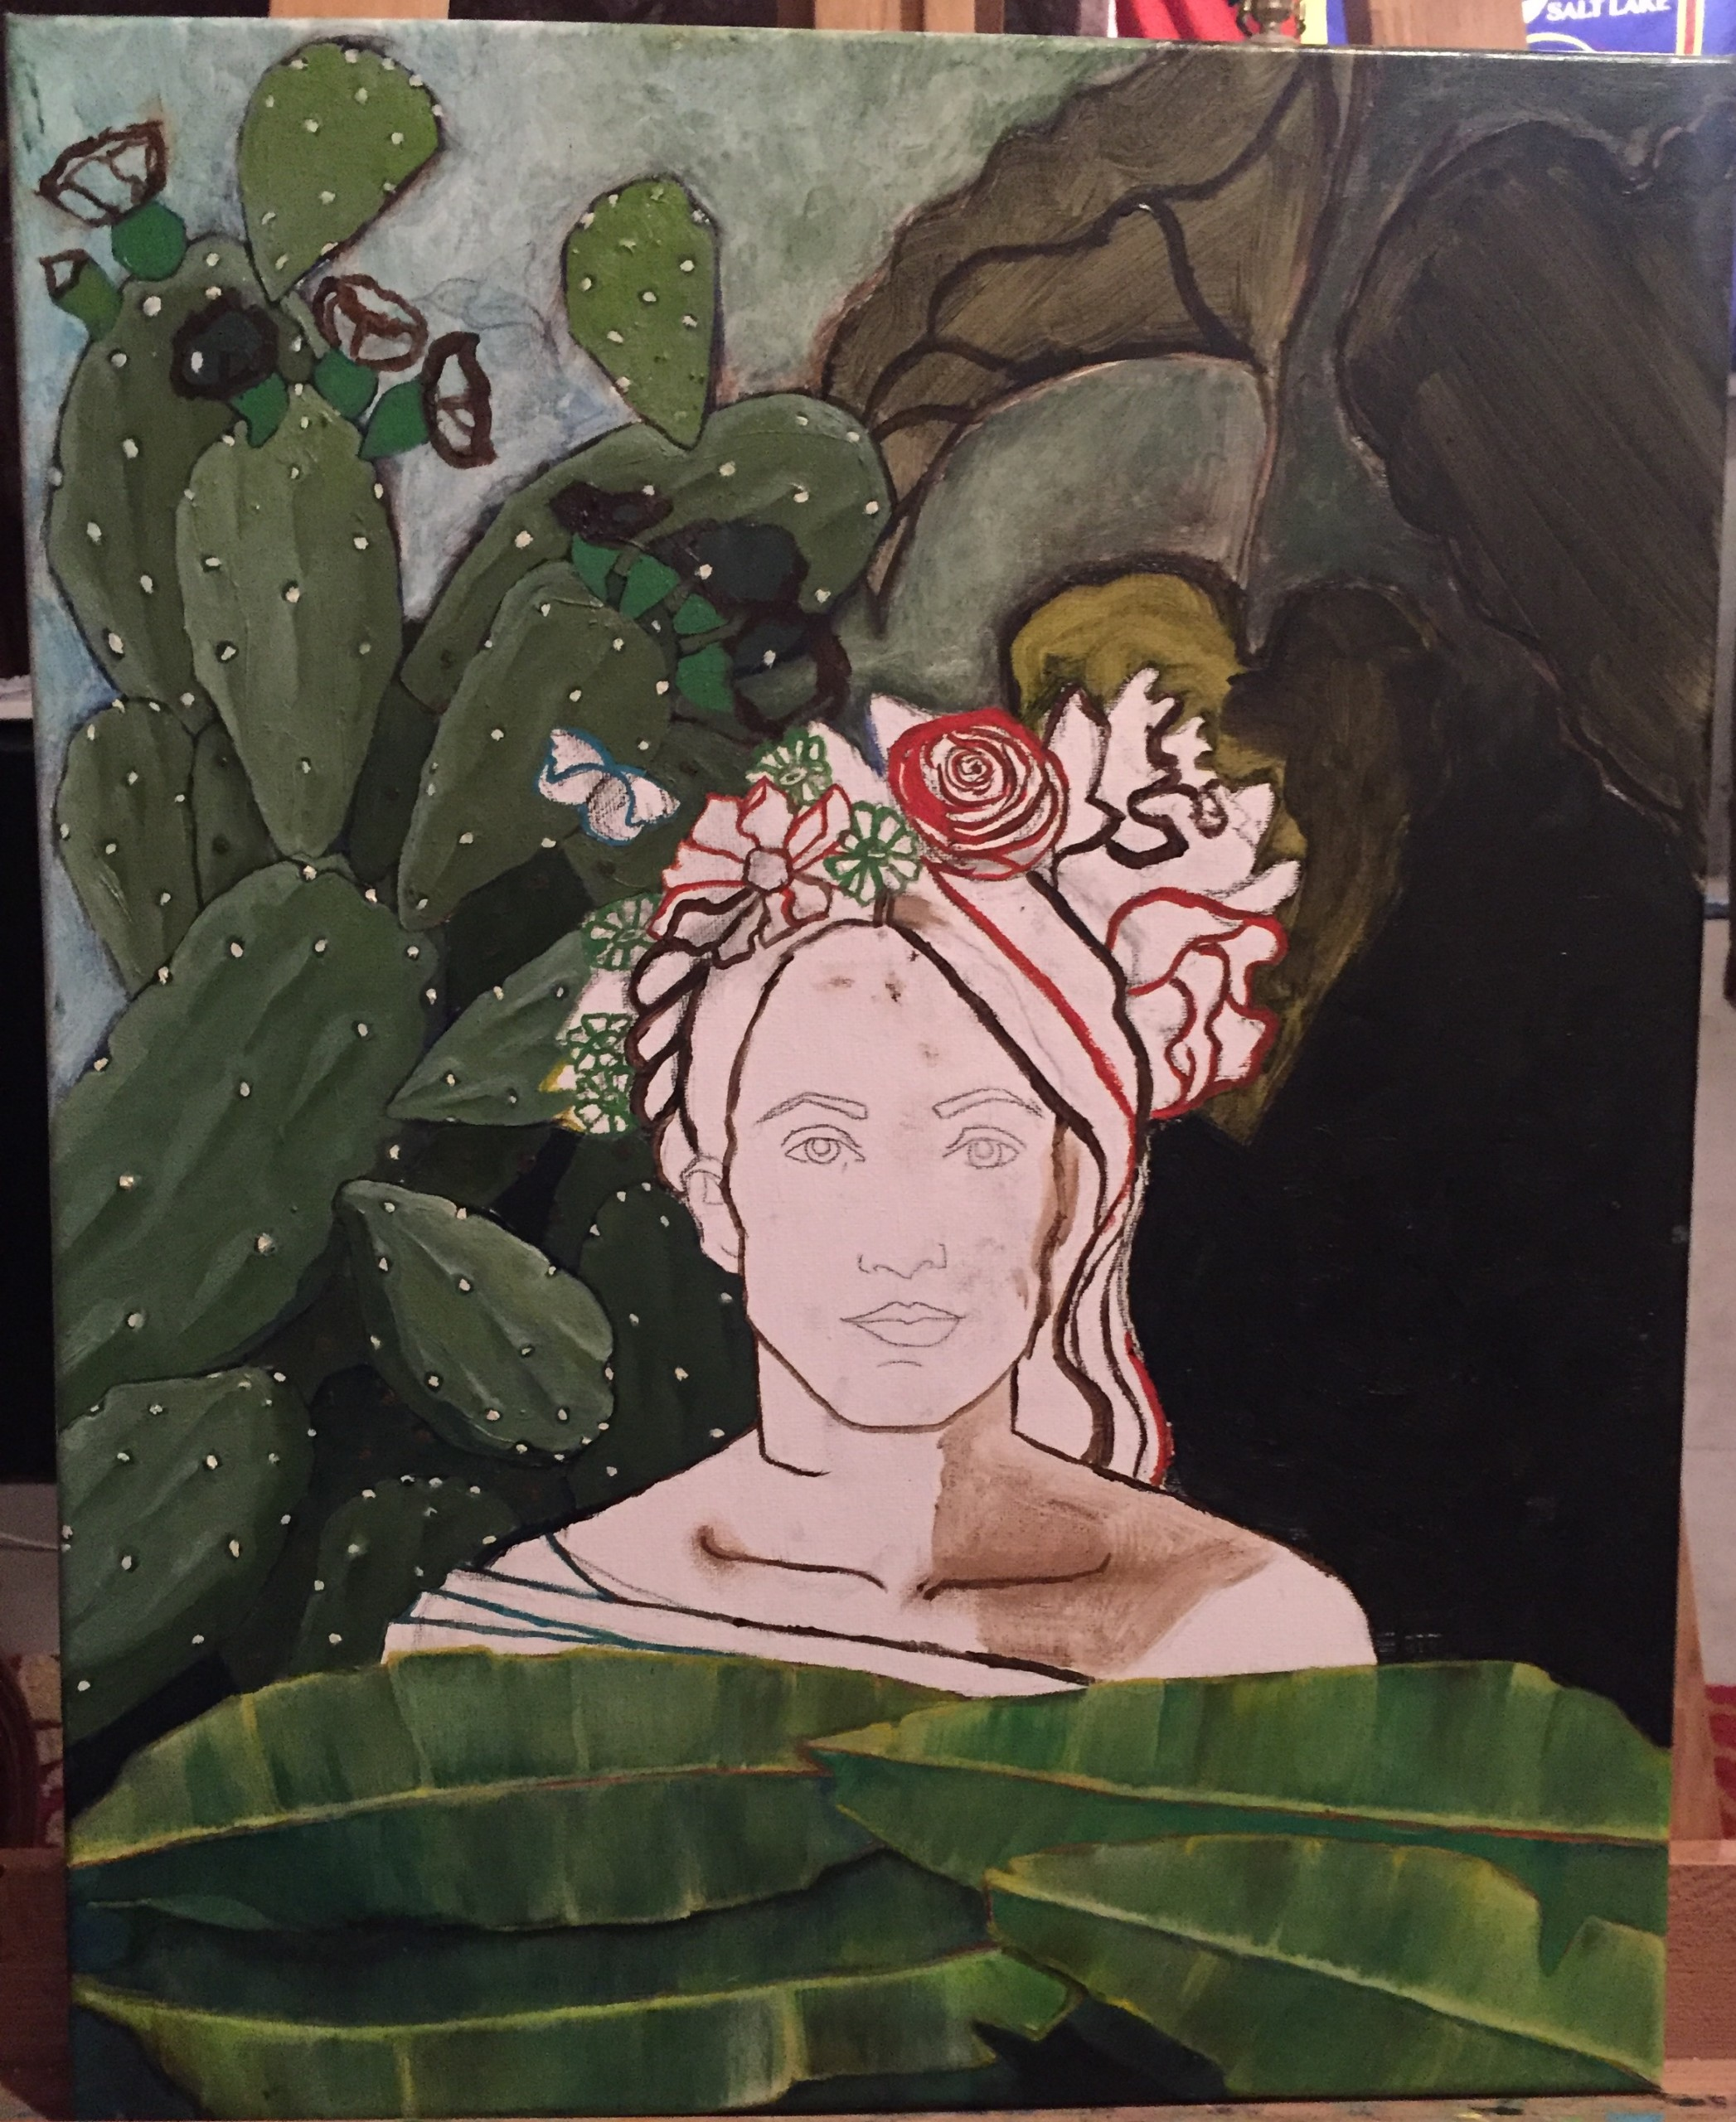 An unfinished painting of a woman against a plant background.